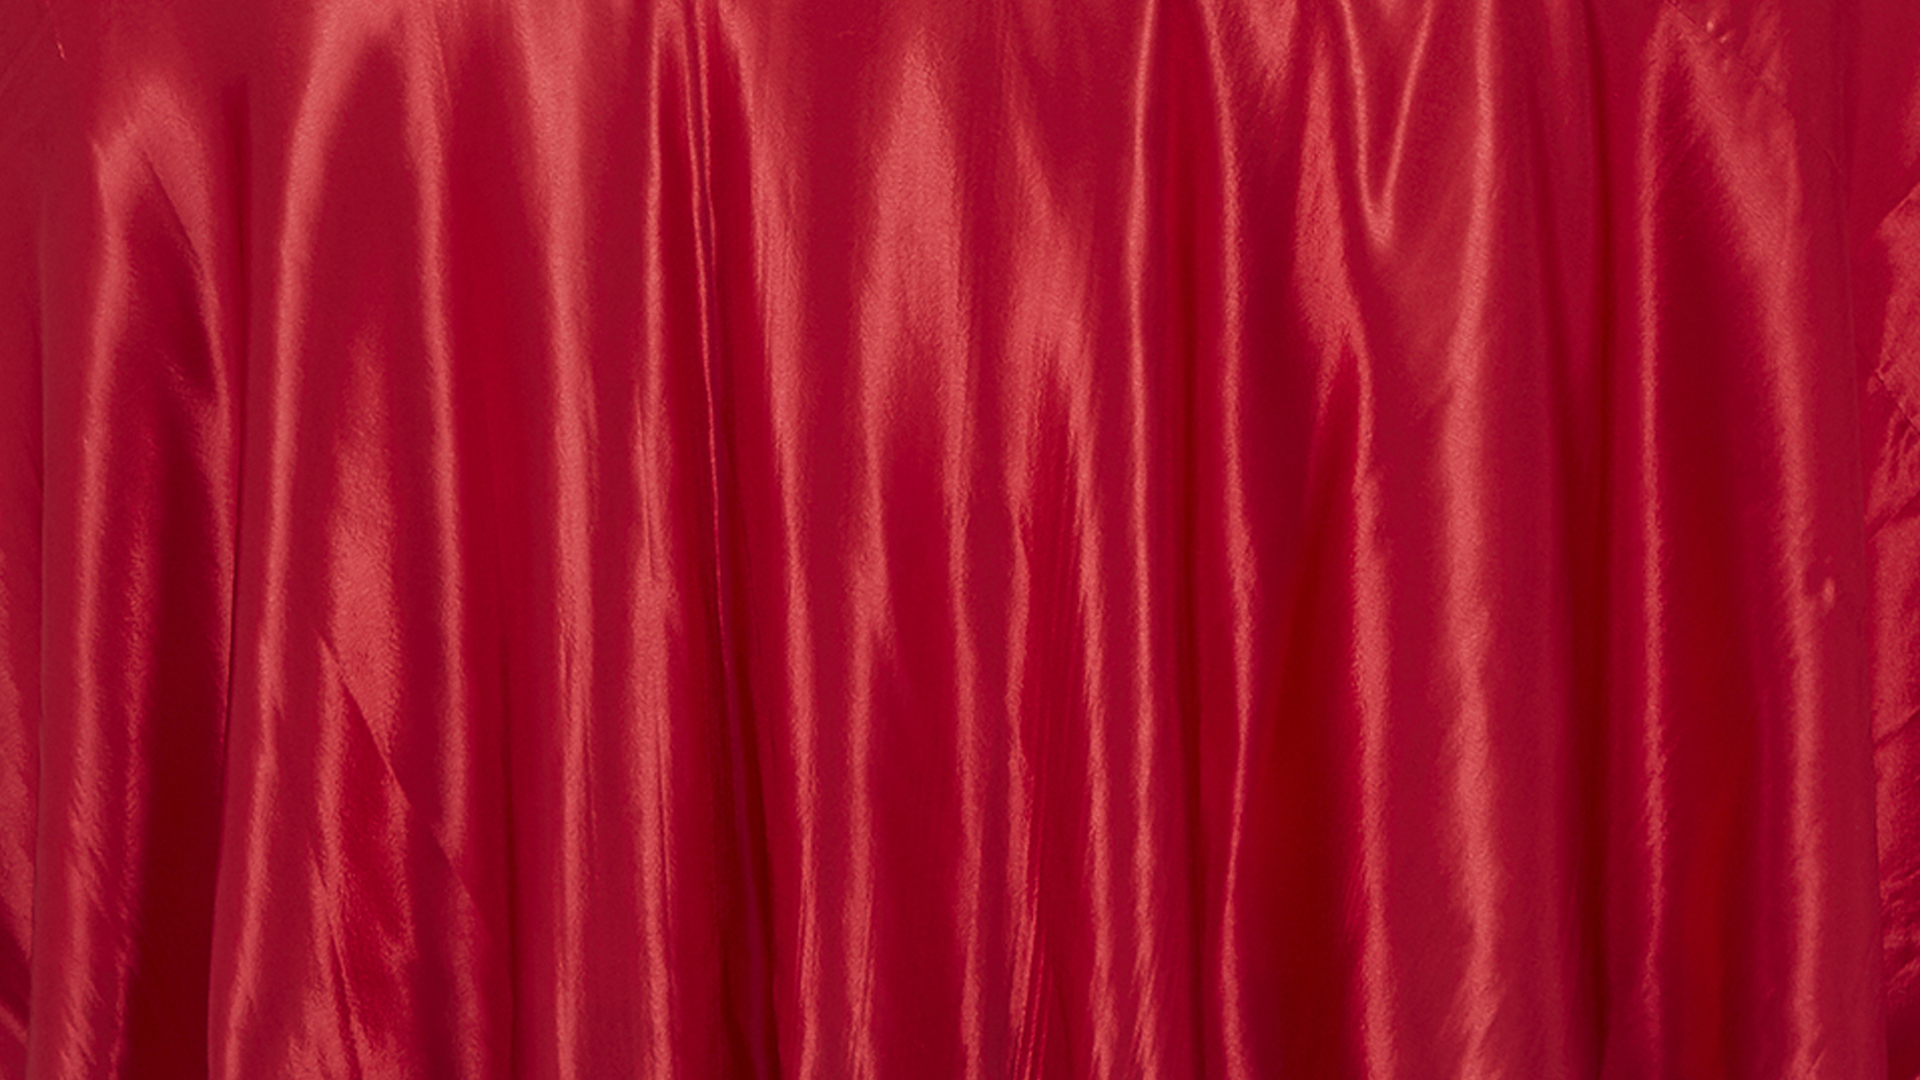 Red Satin Tablecloth | Chair Decor